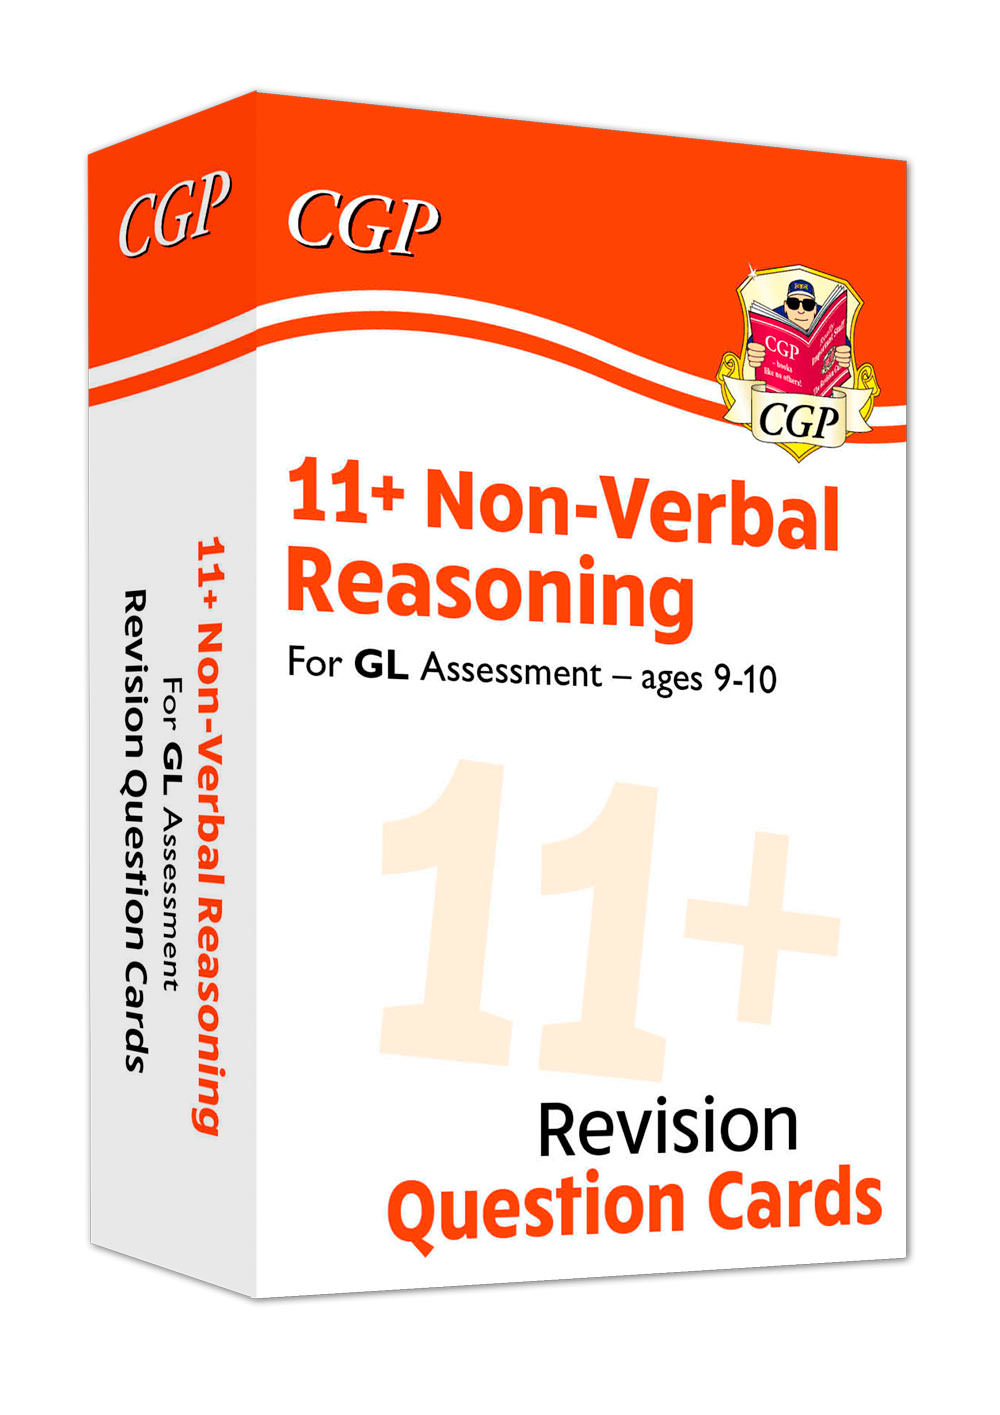 N5FE1 - New 11+ GL Revision Question Cards: Non-Verbal Reasoning - Ages 9-10